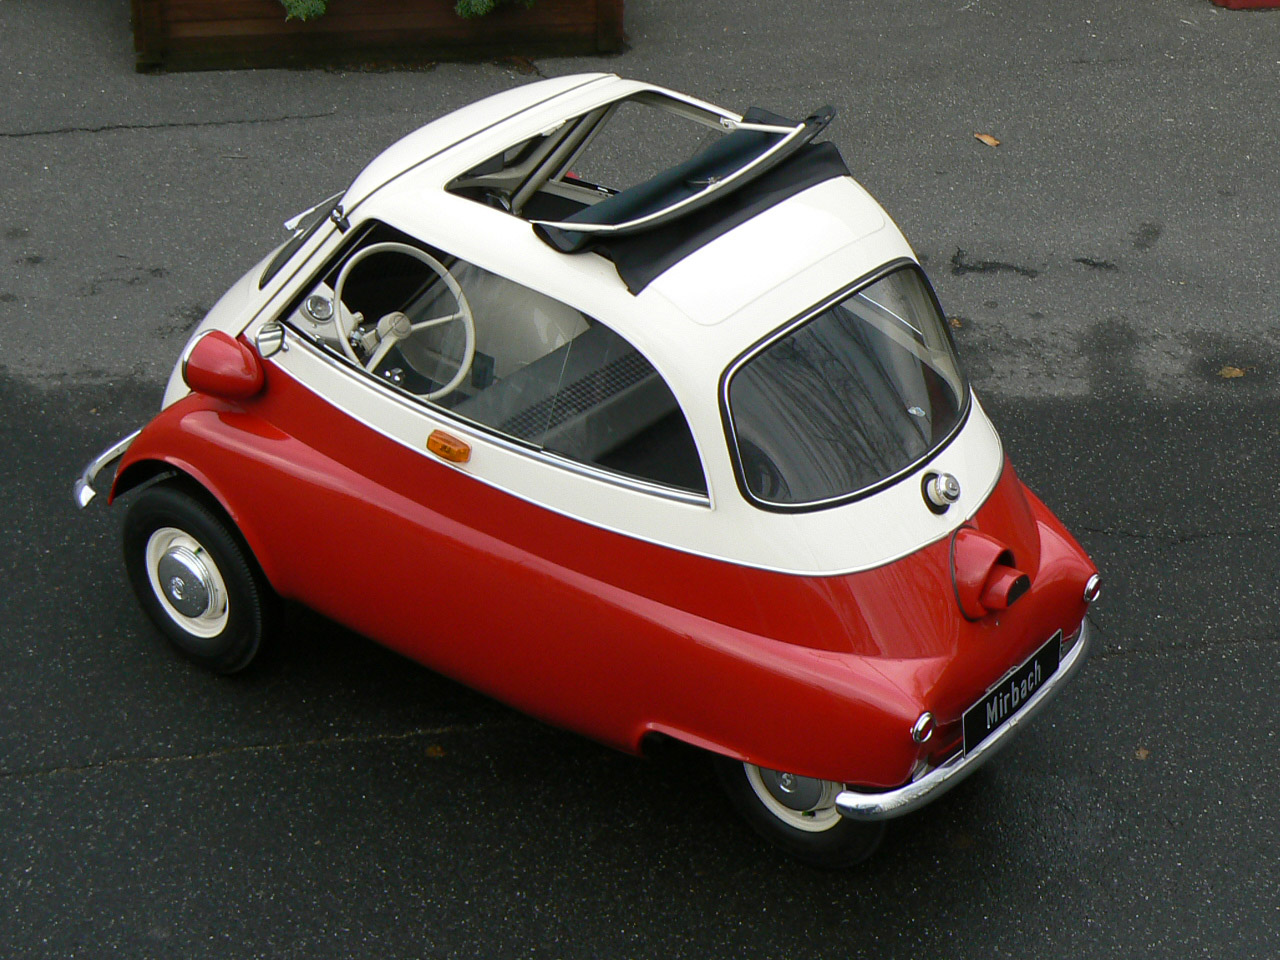 BMW Isetta picture # 43758 | BMW photo gallery | CarsBase.com